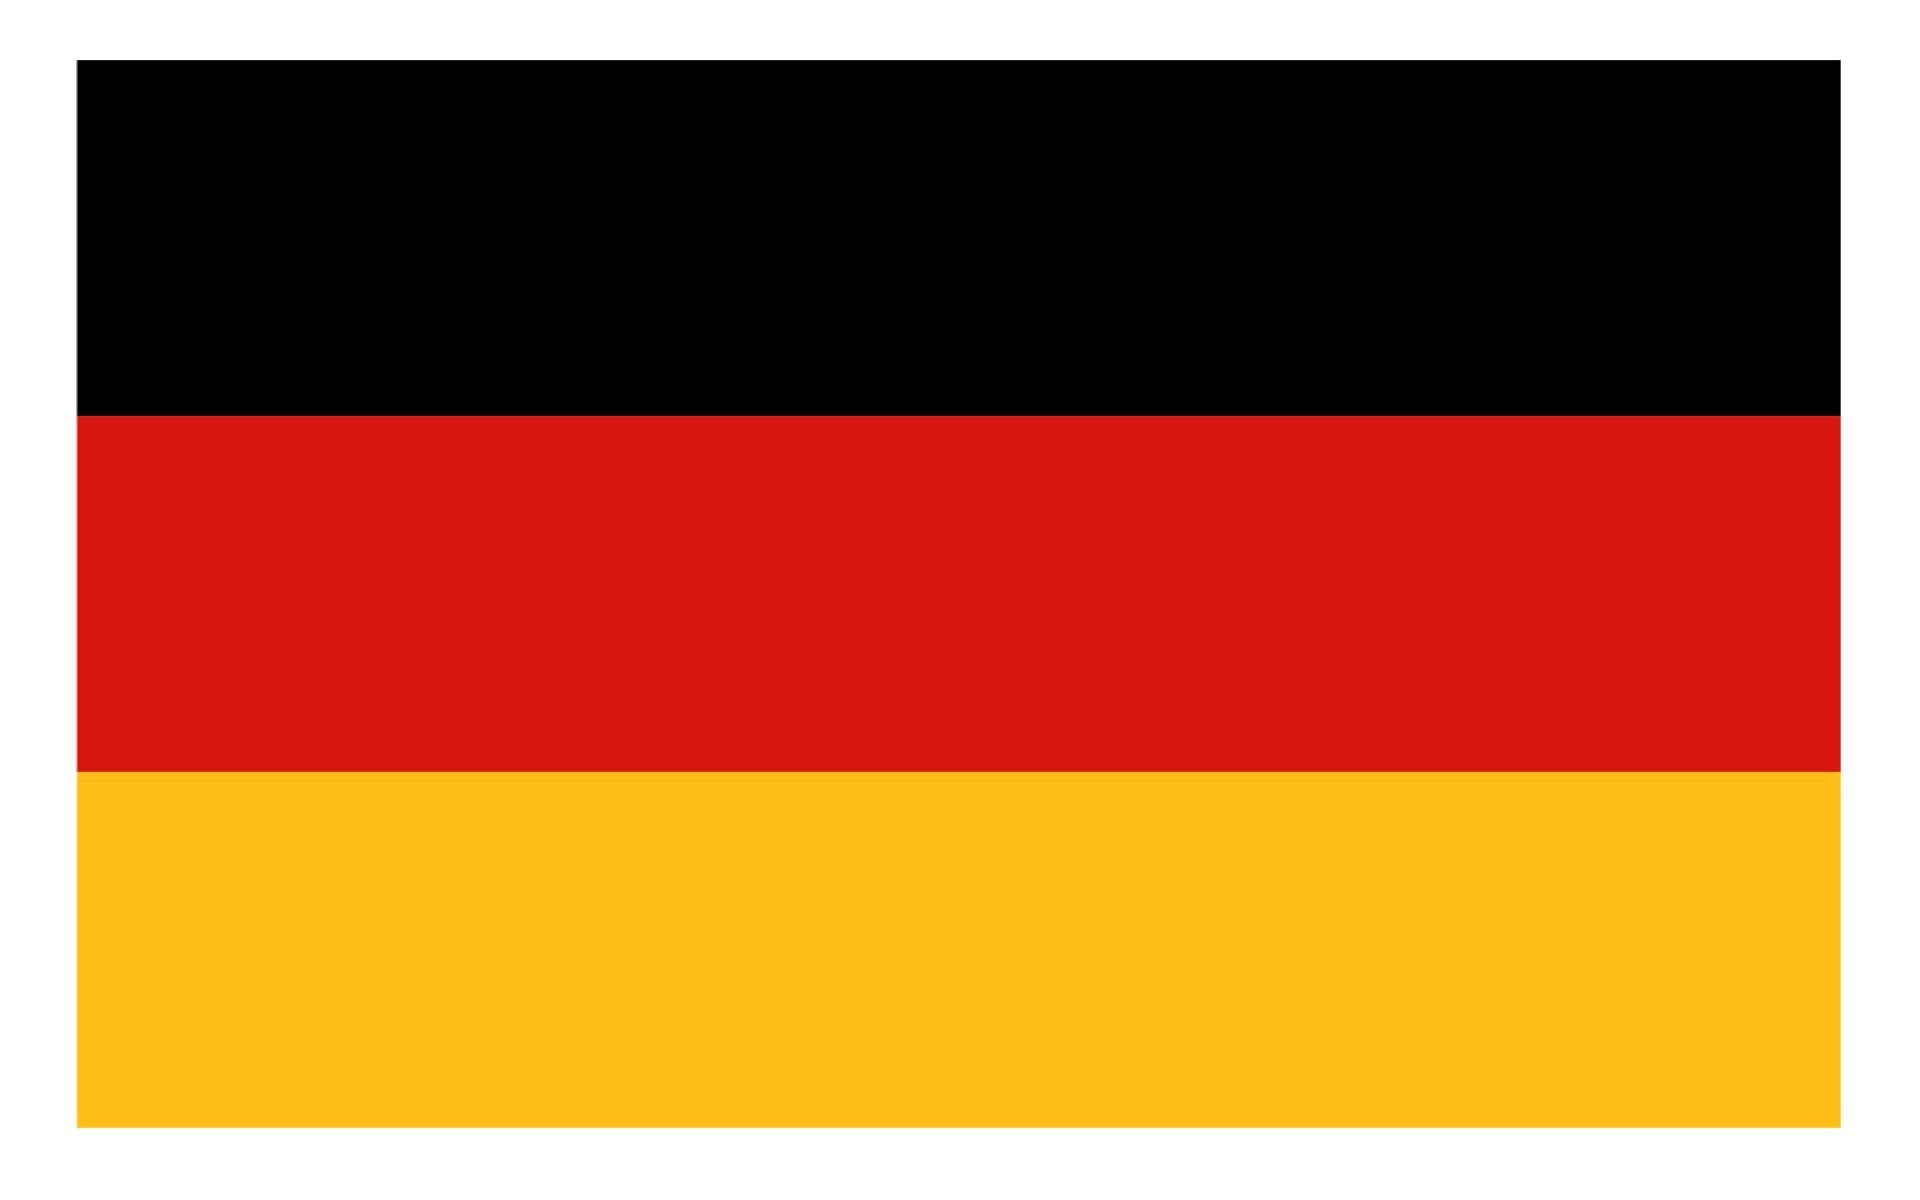 germany flag wallpapers germany flag art desktop wallpaper 查看 . - Germany Flag PNG